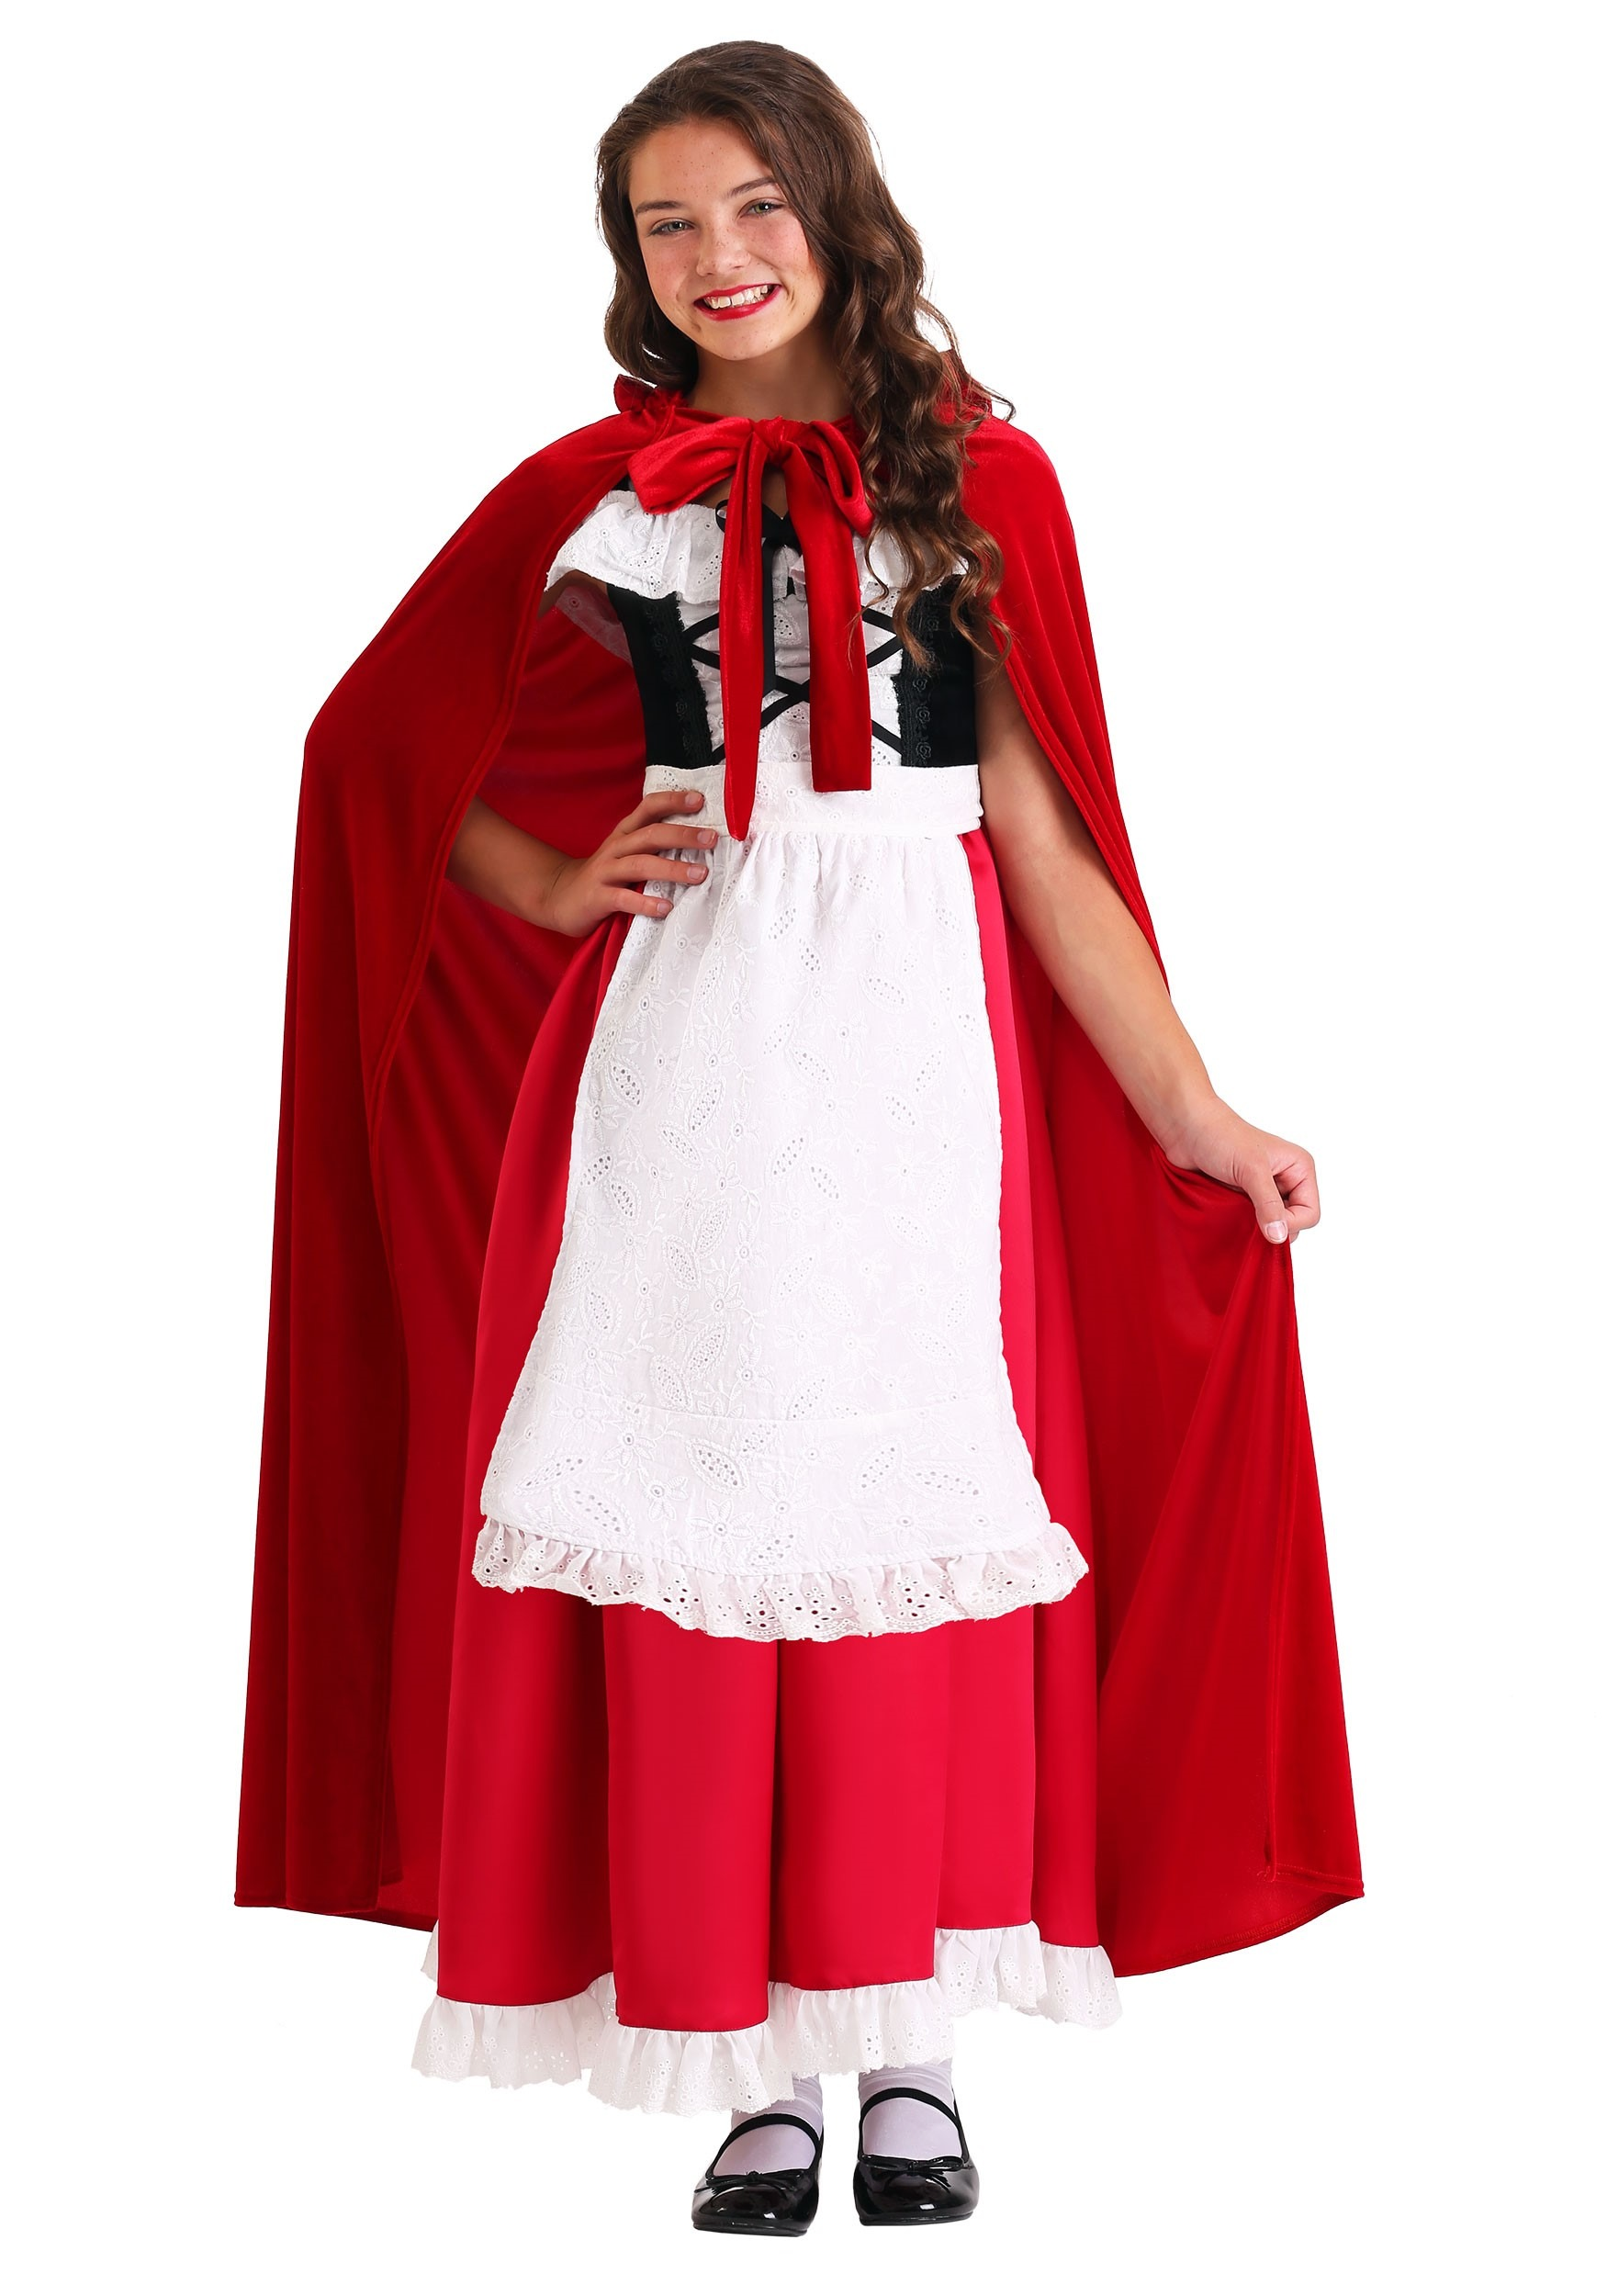 Child's Deluxe Red Riding Hood Costume